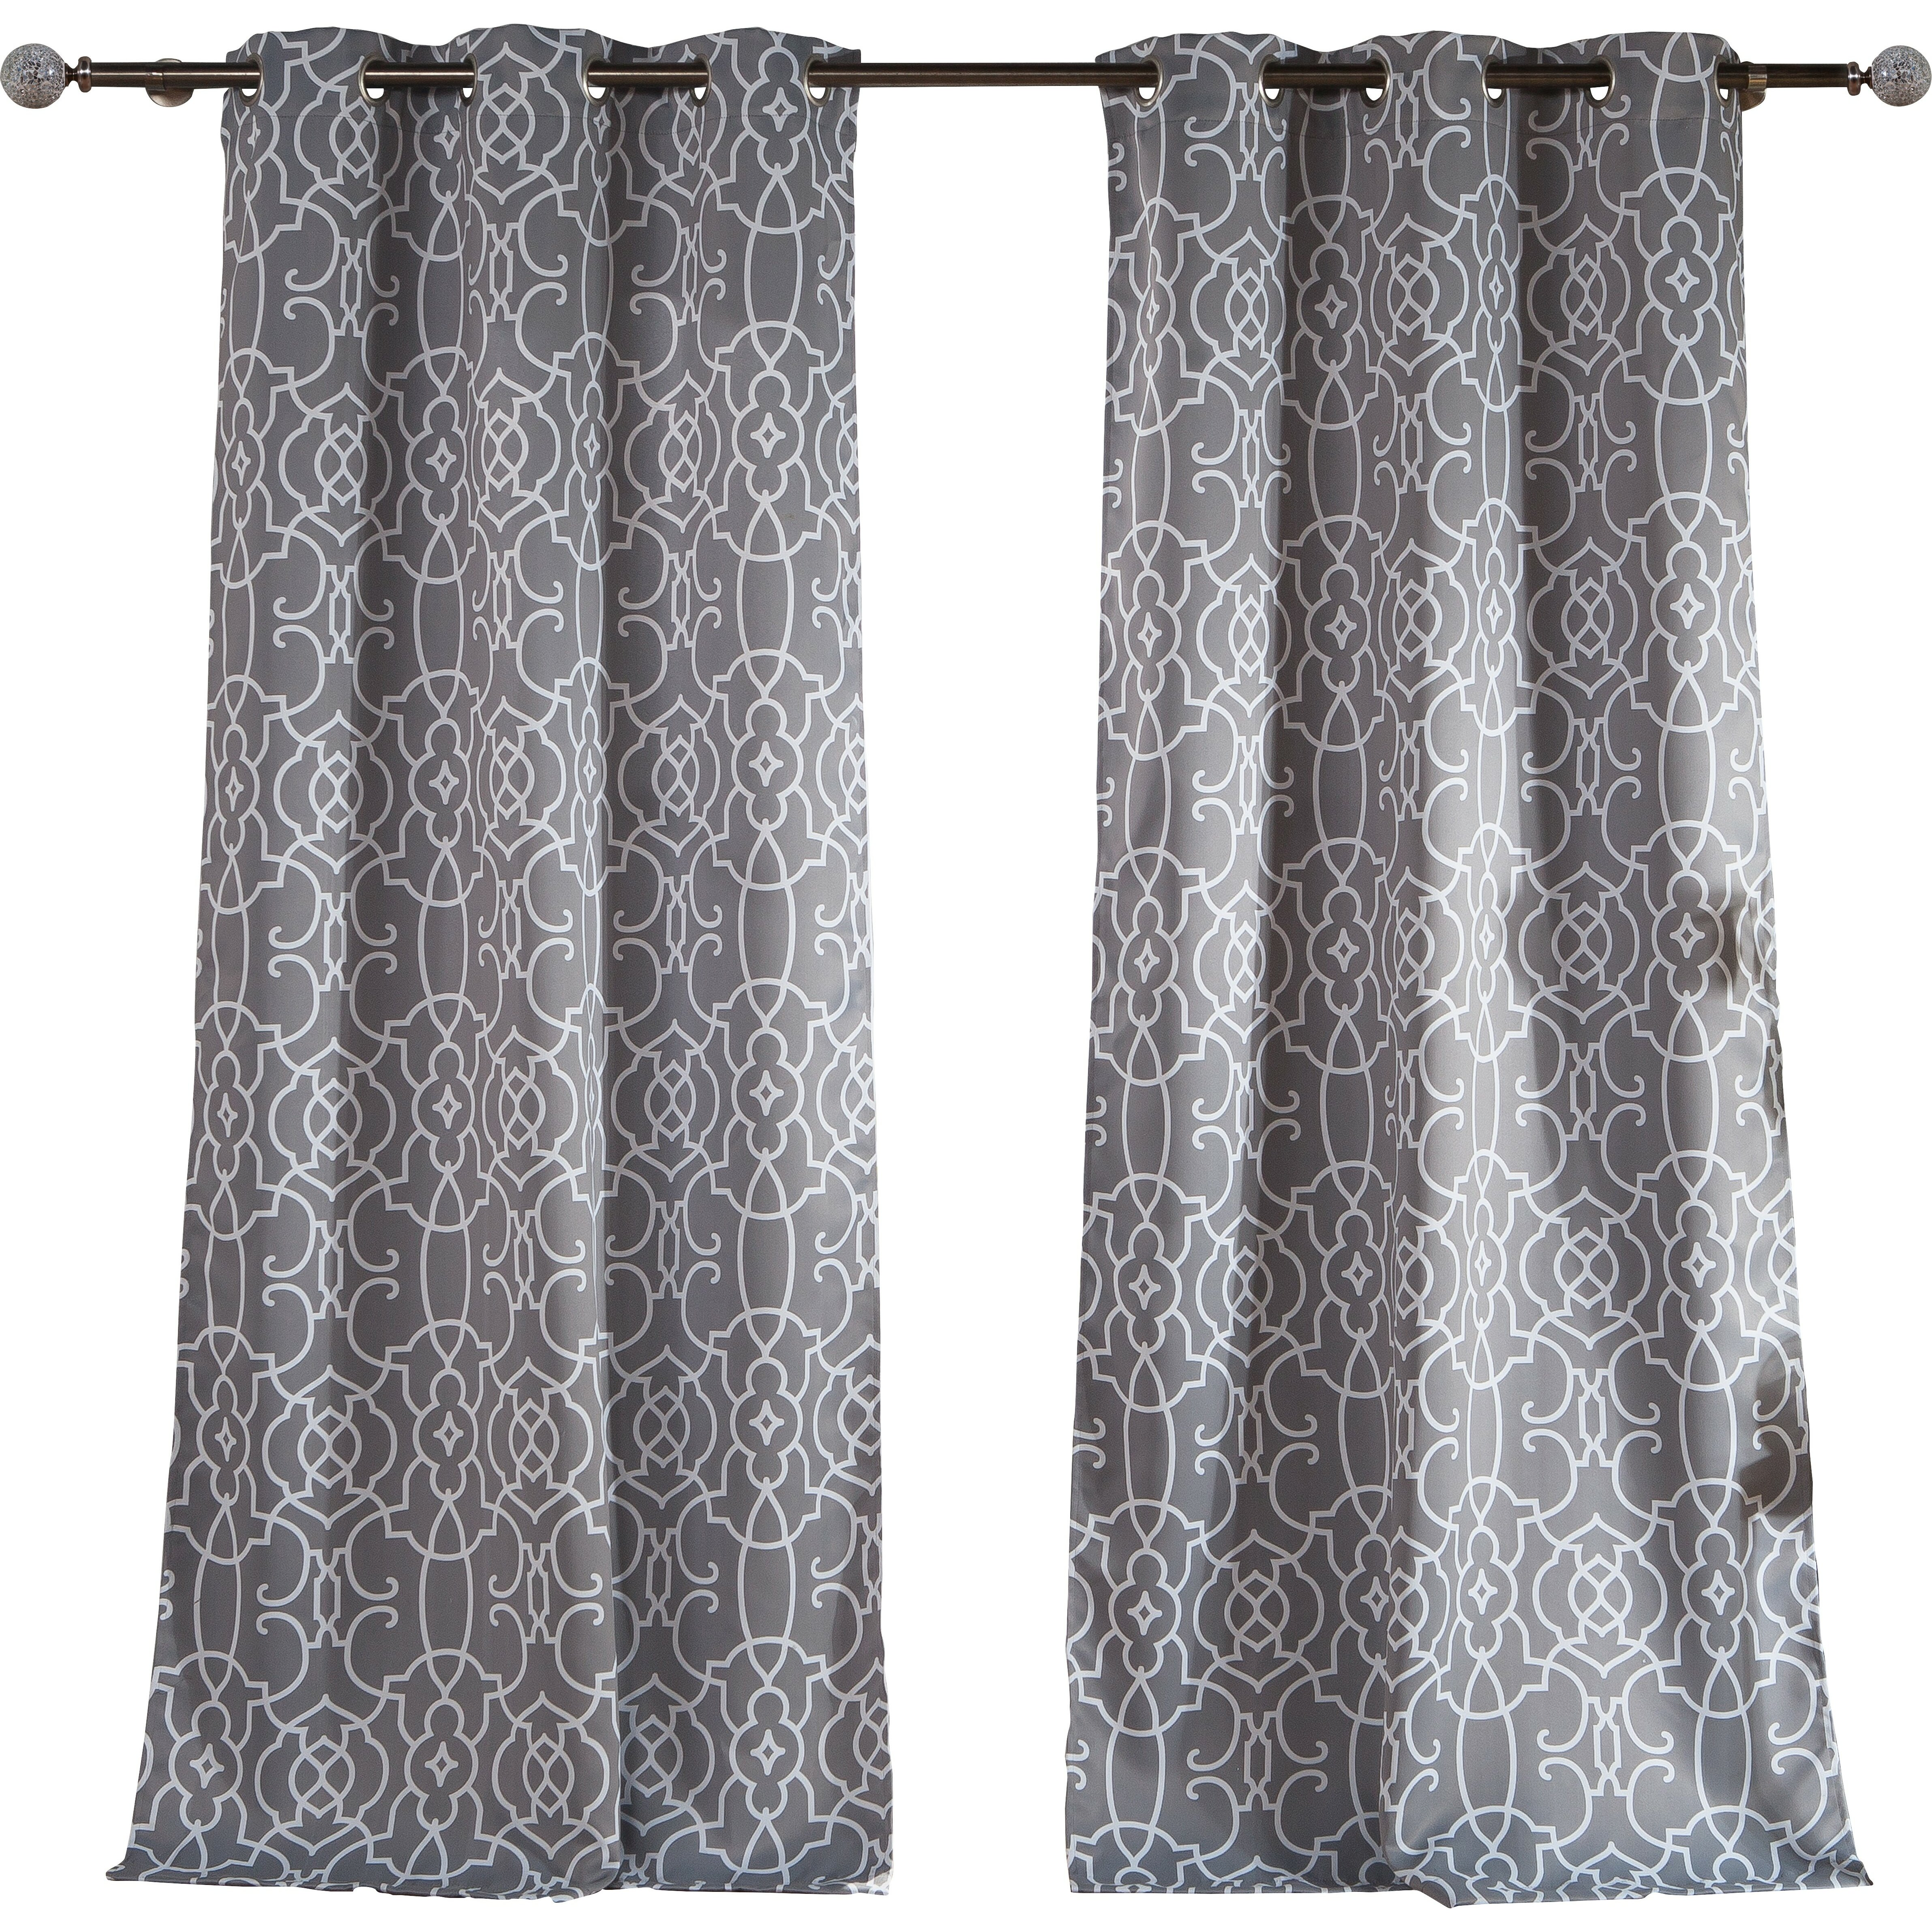 Thermal curtains grey - Alcott Hill Reg Barnsdale Blackout Thermal Curtain Panels